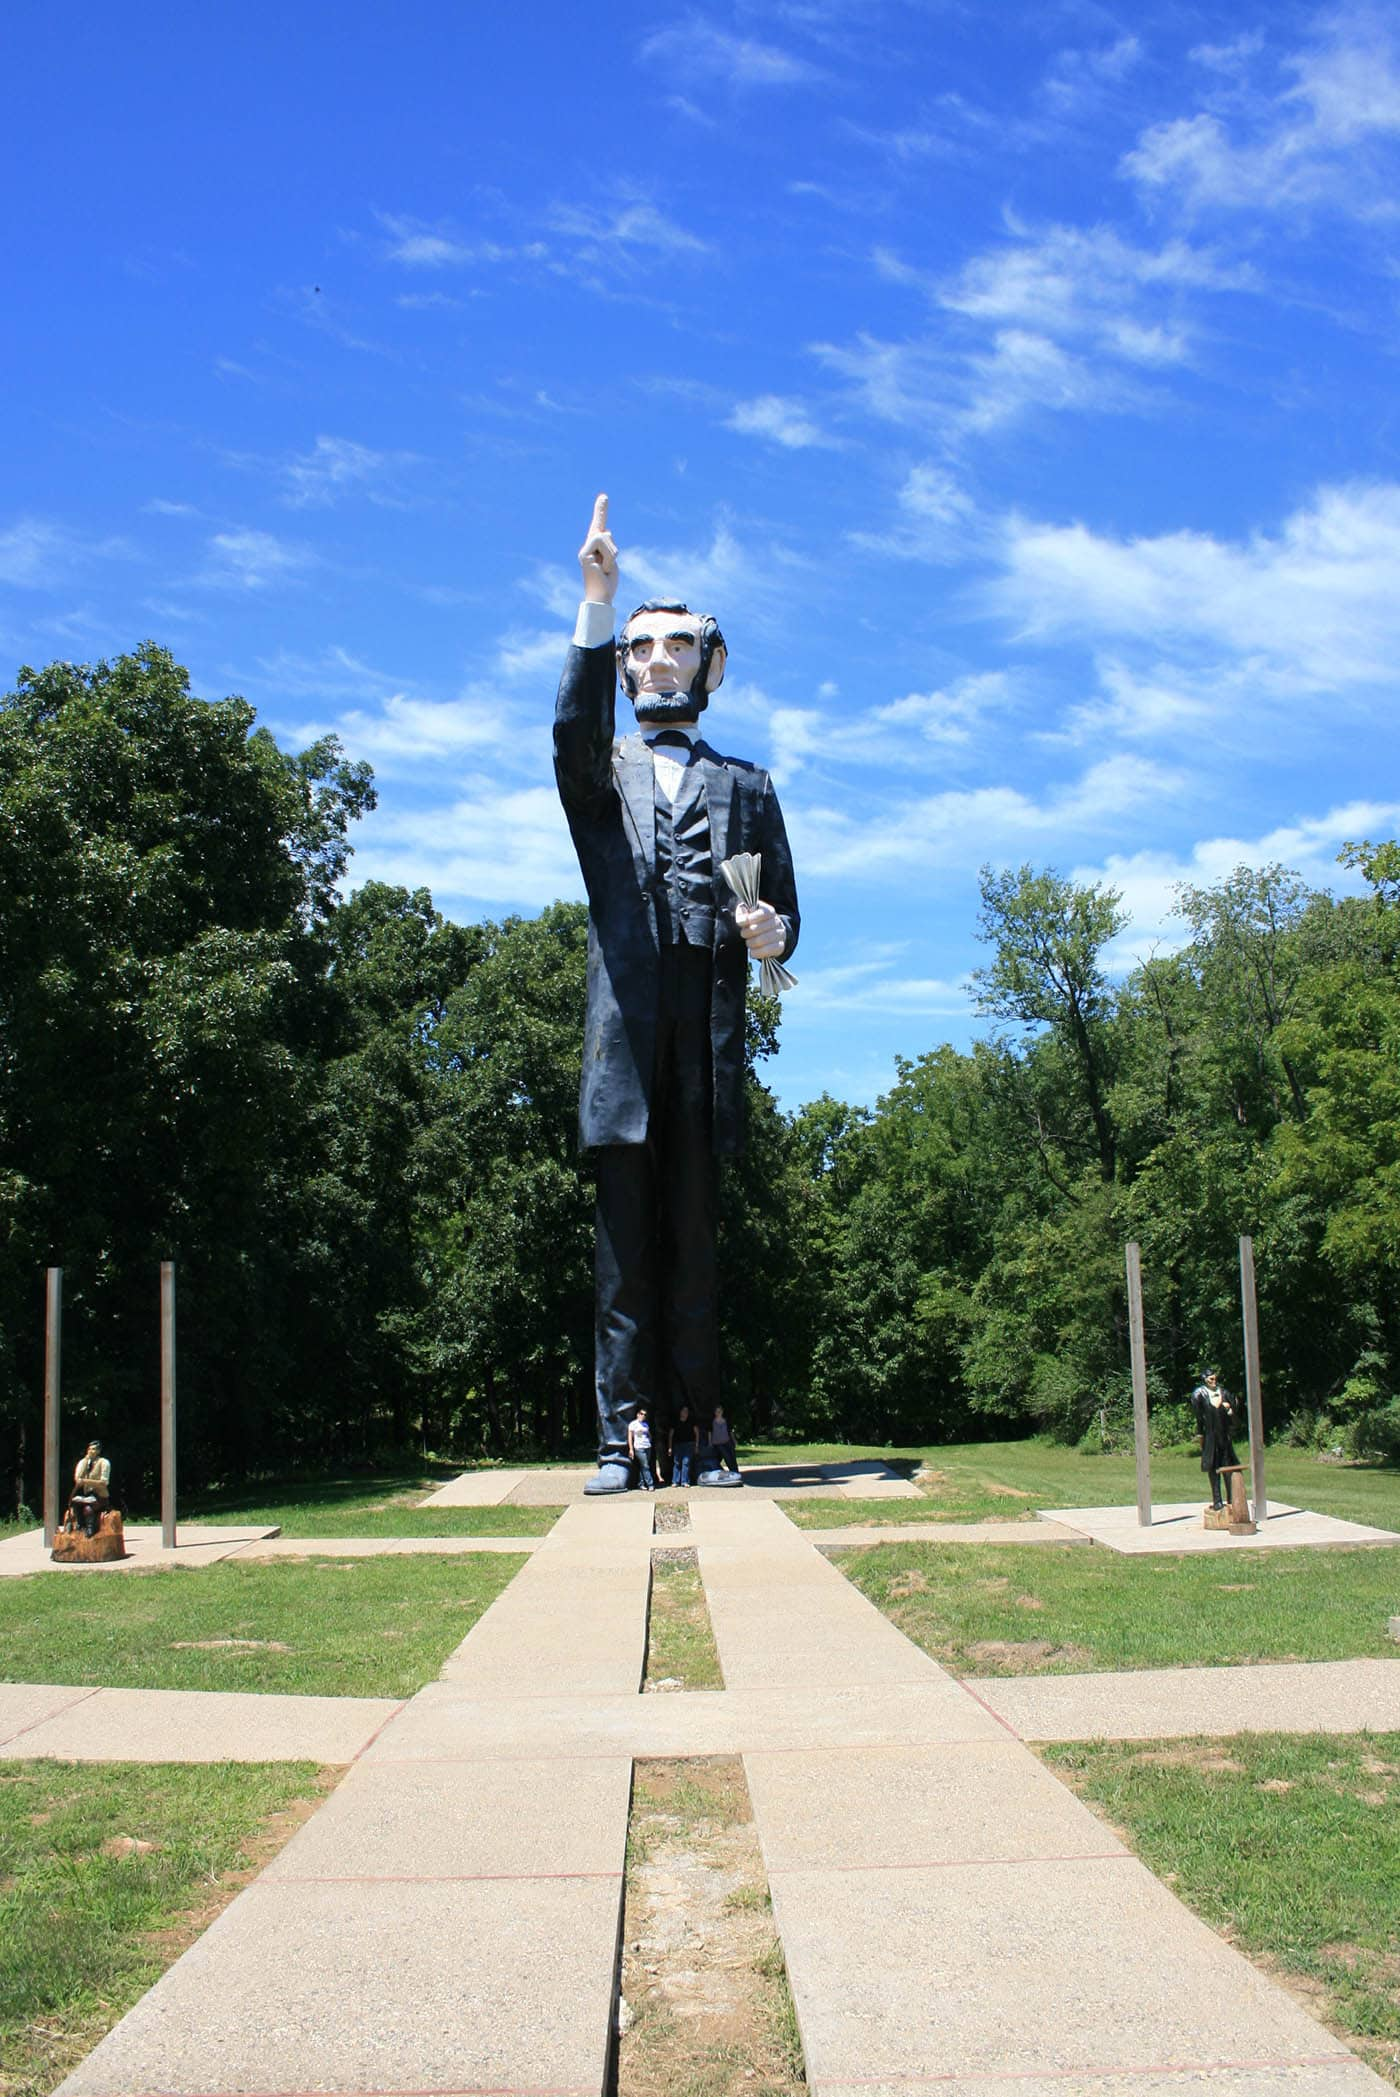 ILLINOIS ROAD TRIP AND ROADSIDE ATTRACTIONS: WORLD'S LARGEST AND UGLIEST LINCOLN STATUE IN CHARLESTON